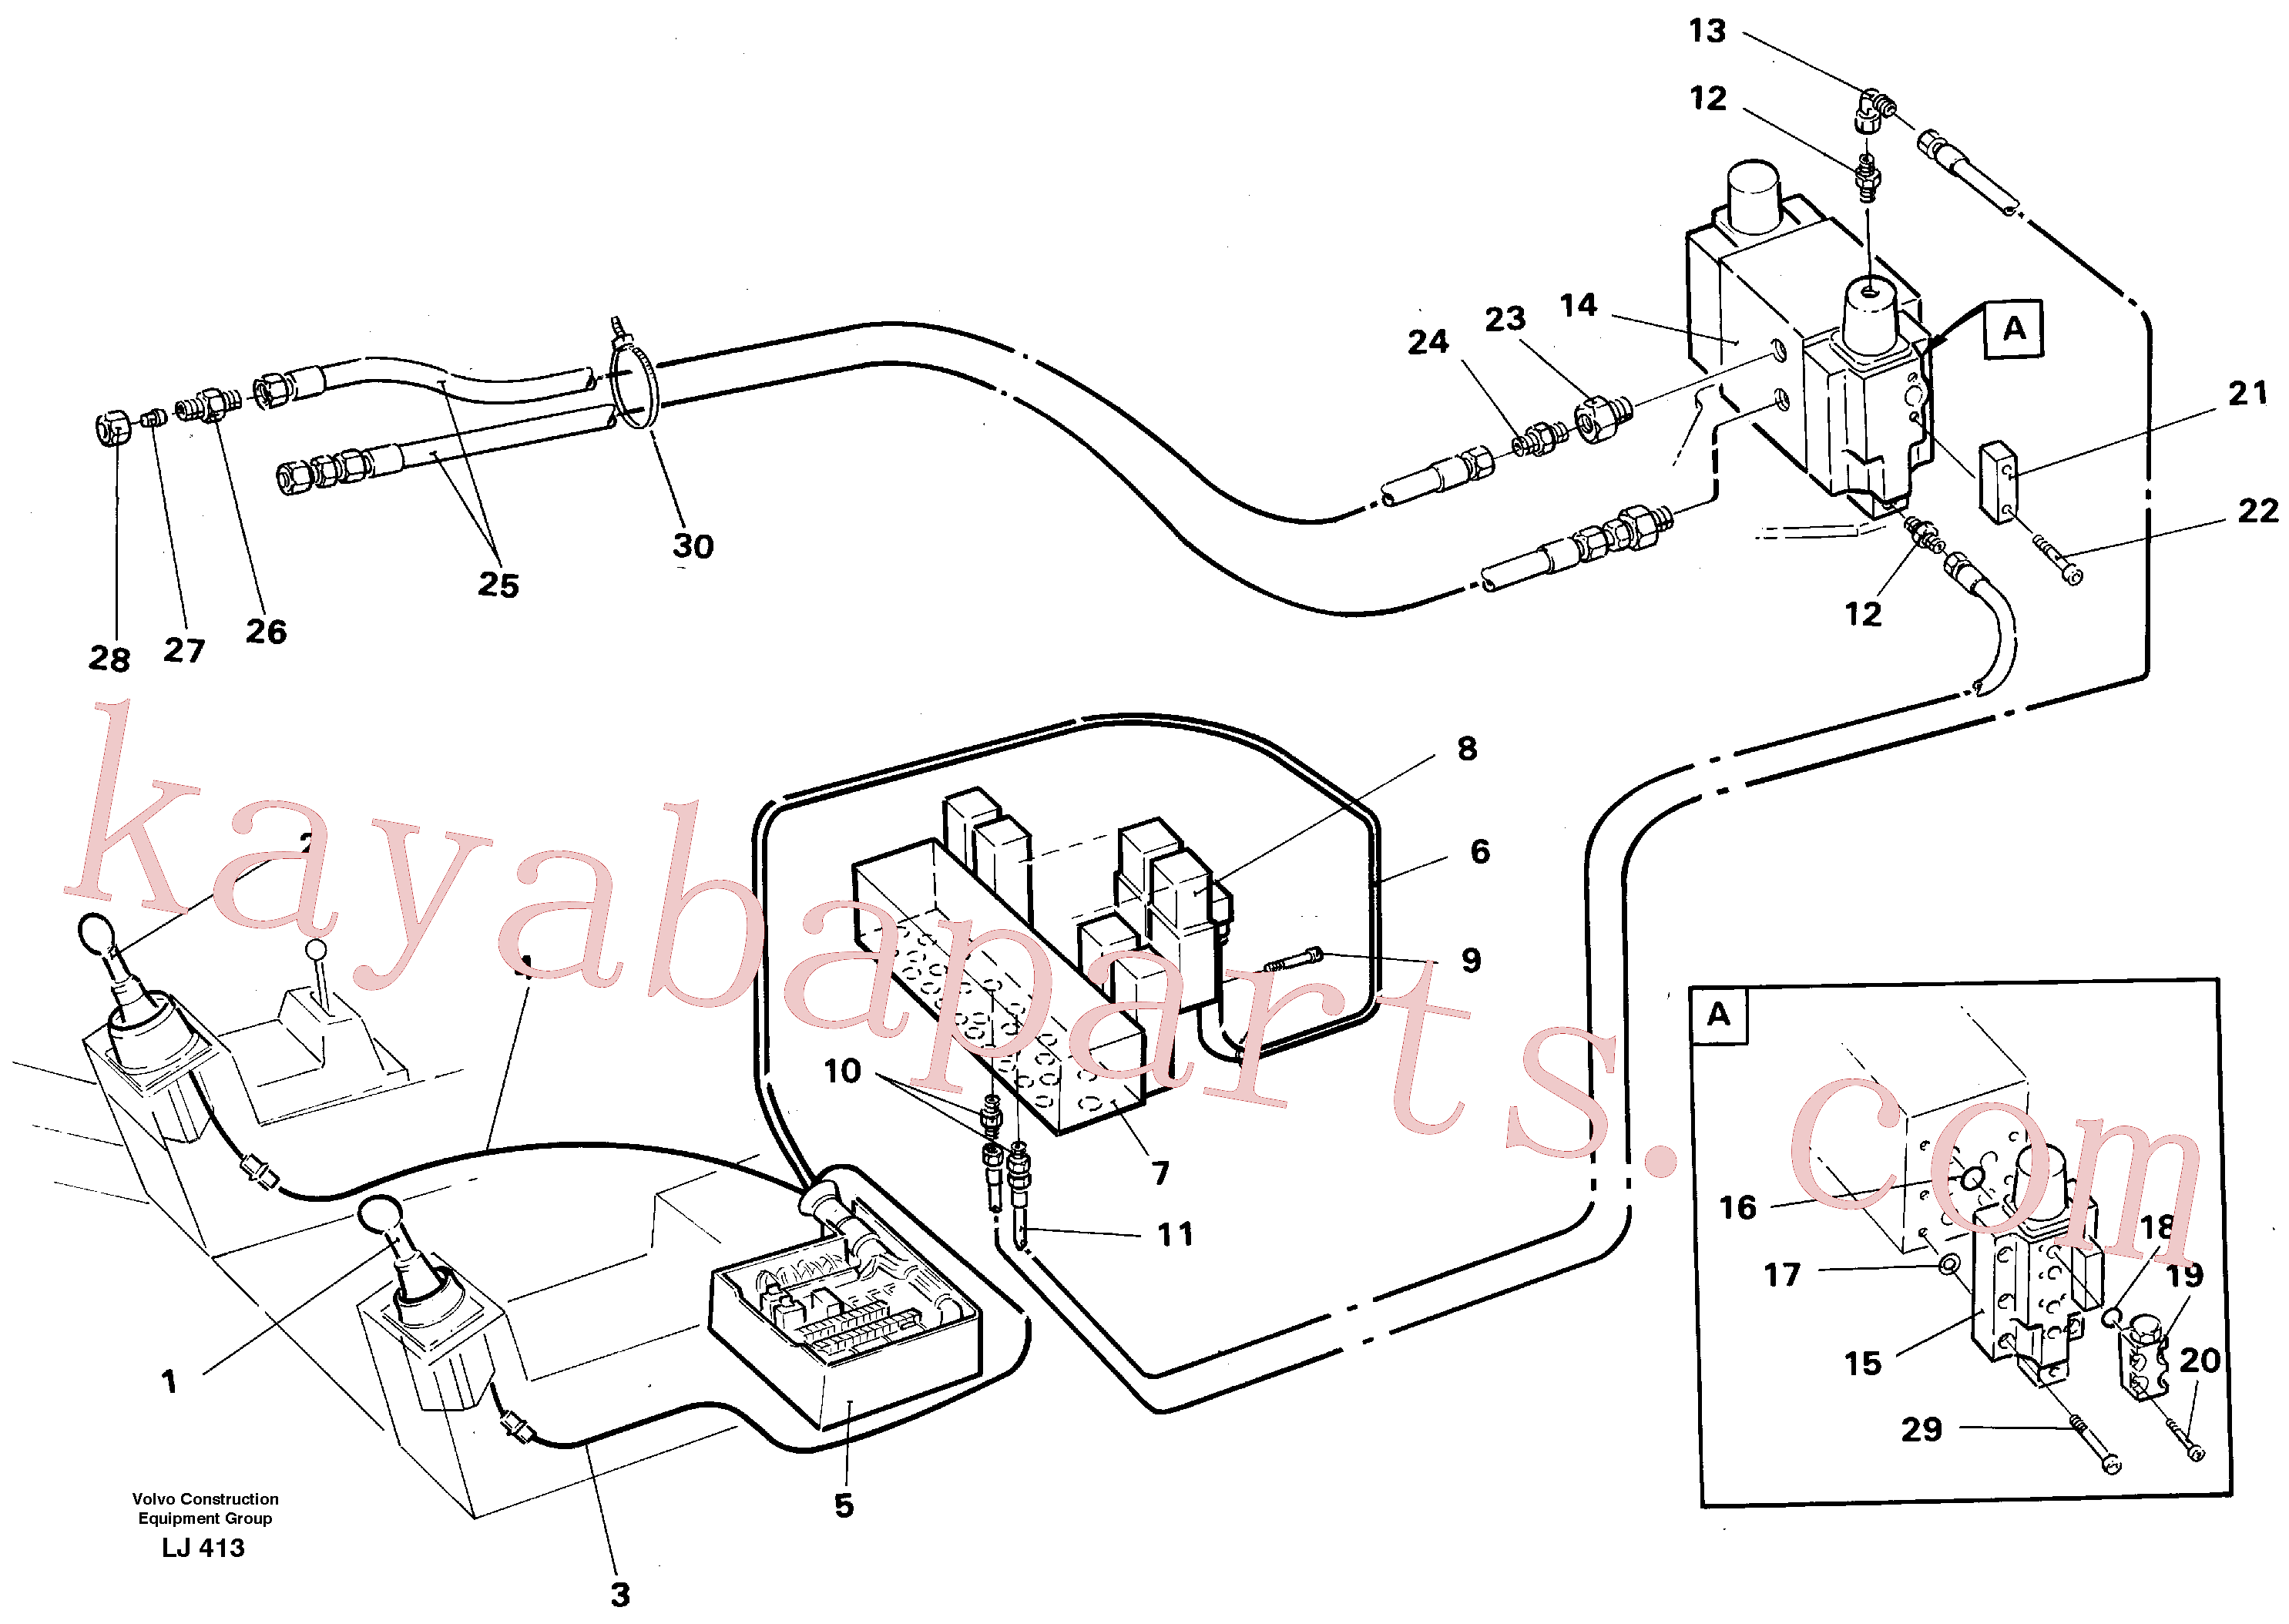 VOE14259603 for Volvo Button operated slope bucket/grab hydraulics onadj. boom.(LJ413 assembly)